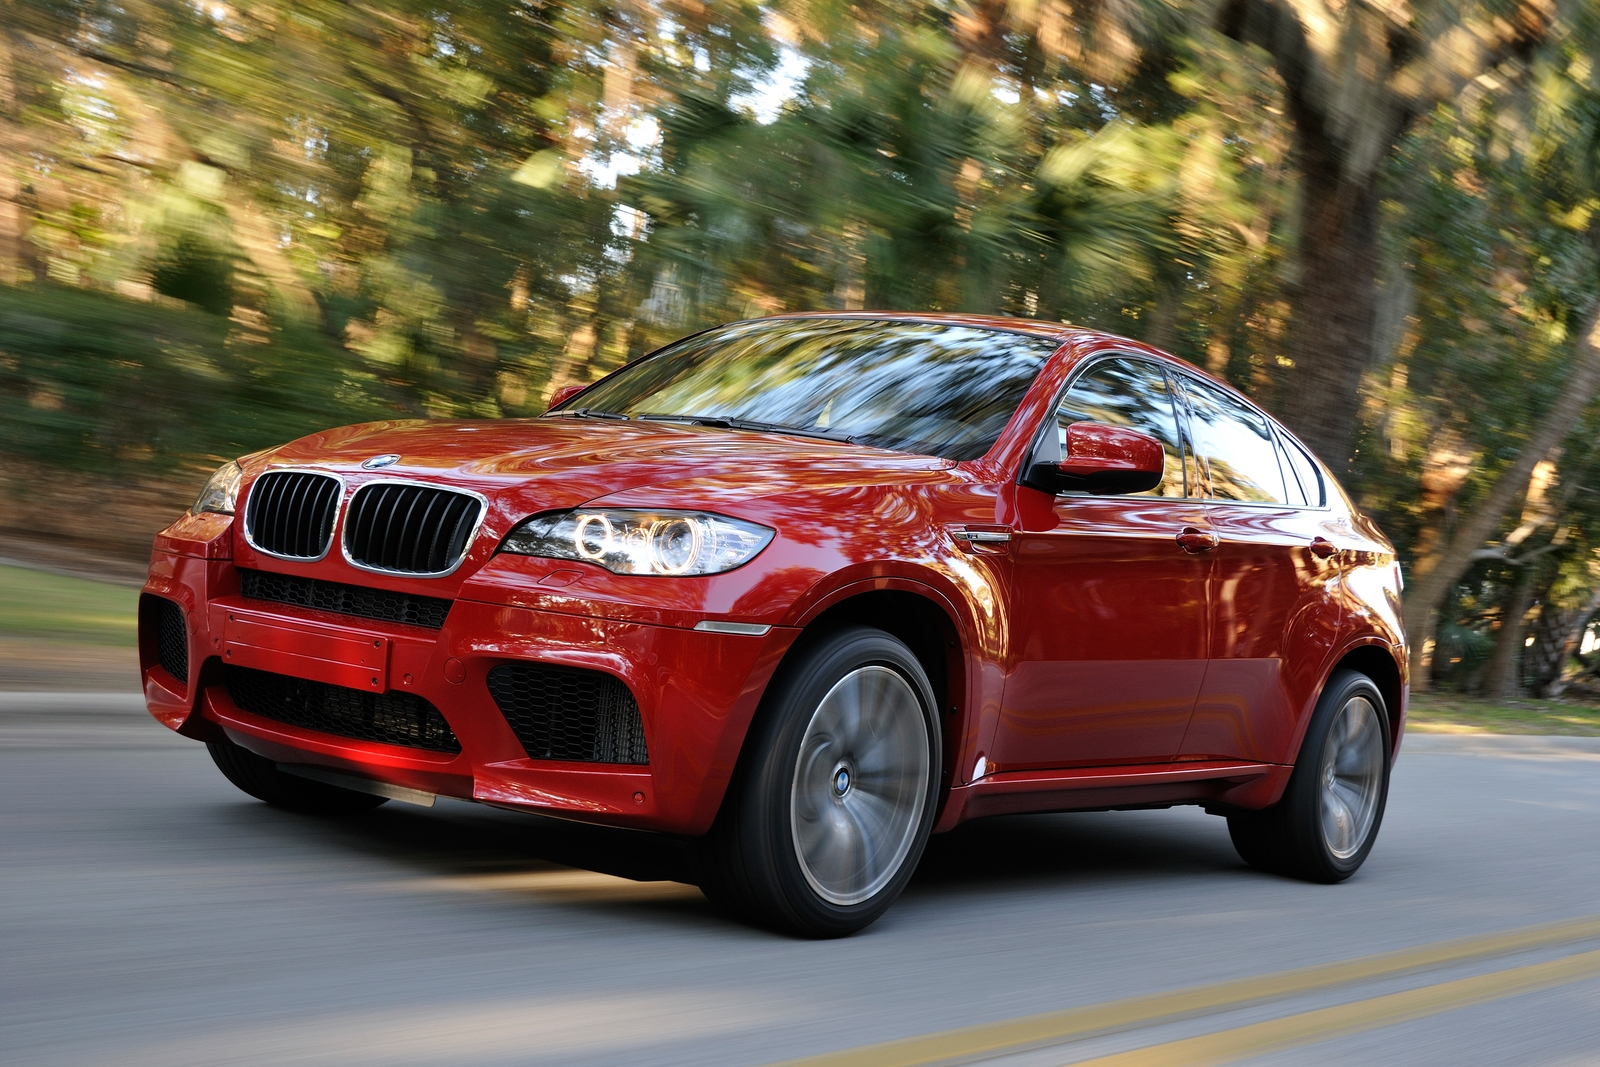 BMW X6M – Official details and photos